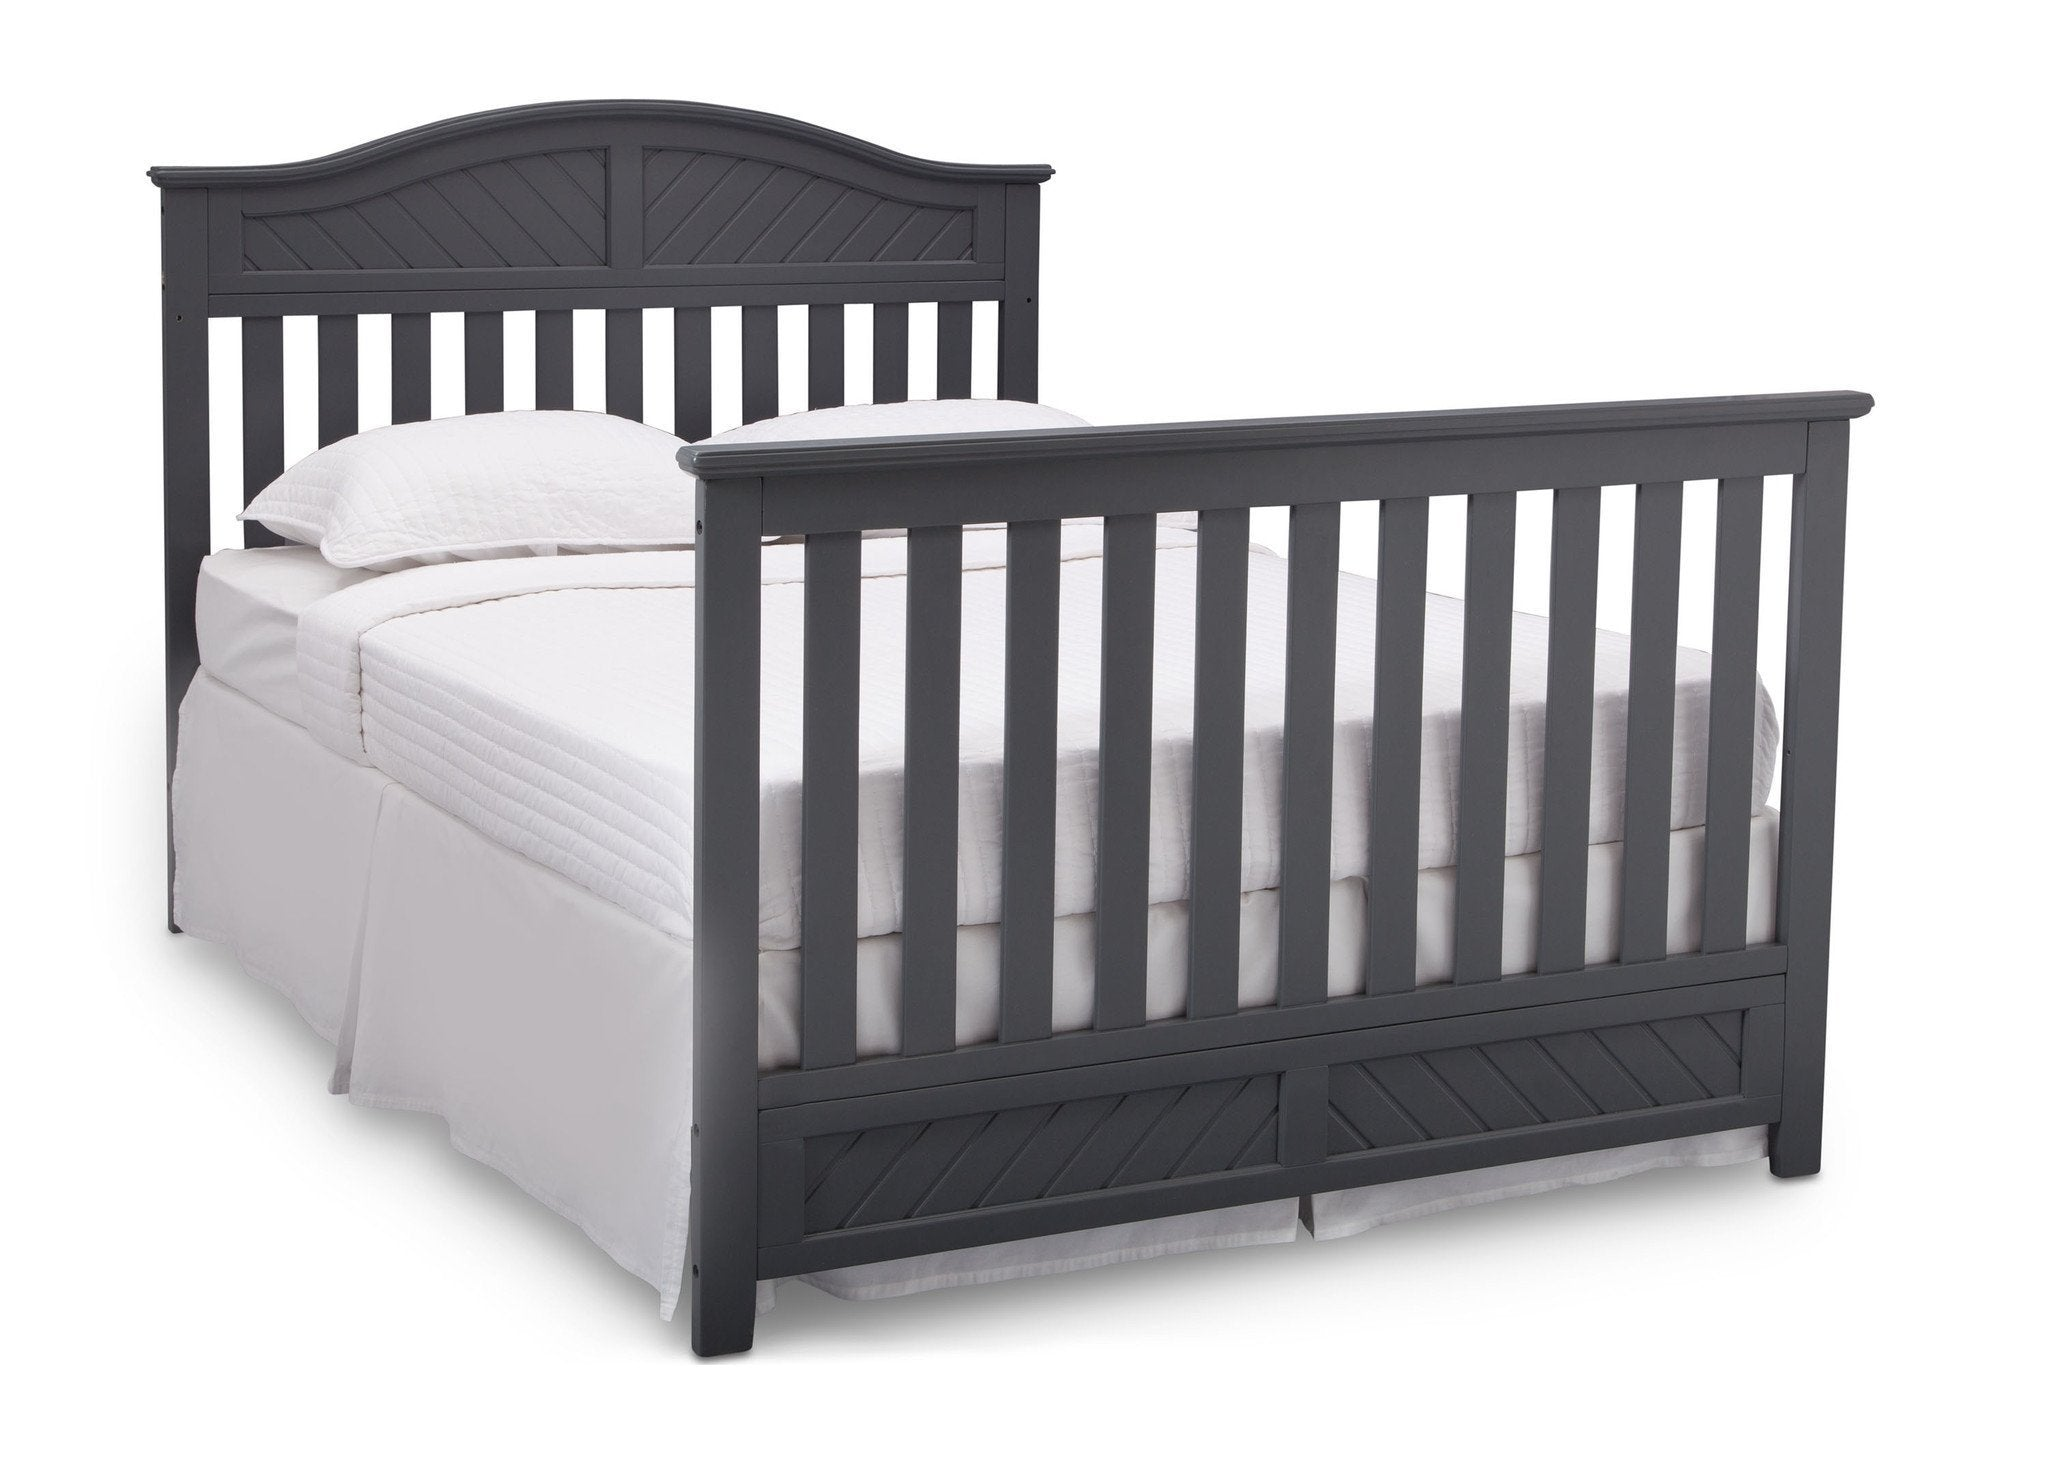 Delta Children Dark Charcoal (029) Bennington Elite Curved 4-in-1 Crib angled conversion to full size bed c6c